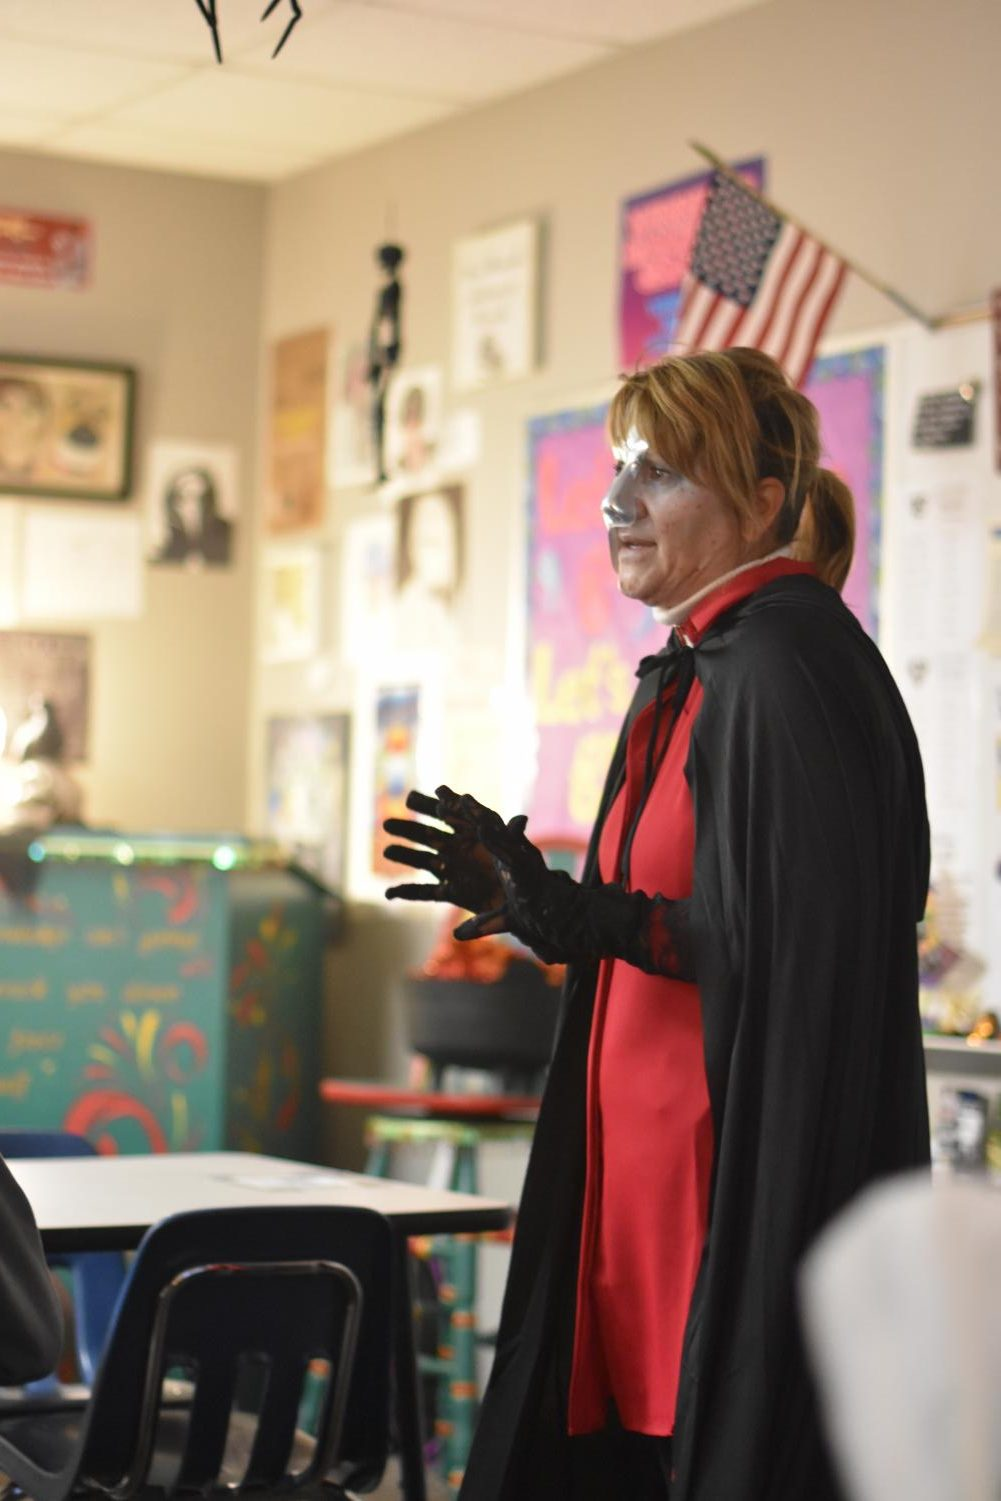 "English excitements // Explaining Edgar Allan Poe's short story, English III teacher Mrs. Elizabeth Simmons shares her favorite short story to her first period class Oct. 30 in honor of the last day of Teen-Tober. Teen-Tober, hosted by the librarians, encouraged teen reading around the school. ""Poe is a master of the macabre, so what a better time to delve into his work than Halloween?"" Simmons said."